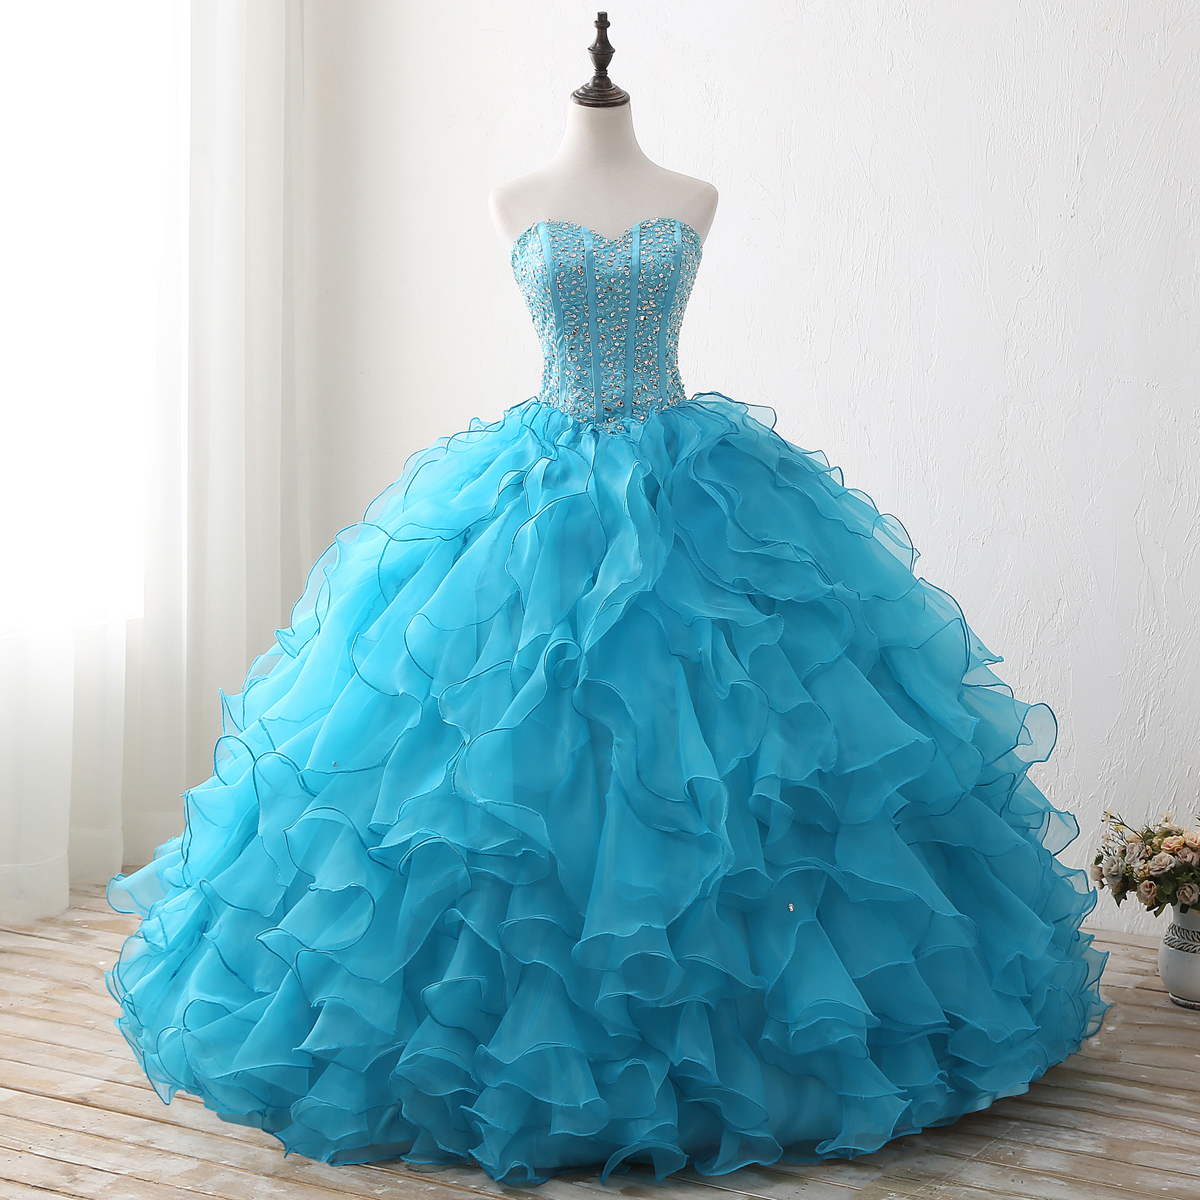 Wholesale blue prom ball gown - Online Buy Best blue prom ball gown ...